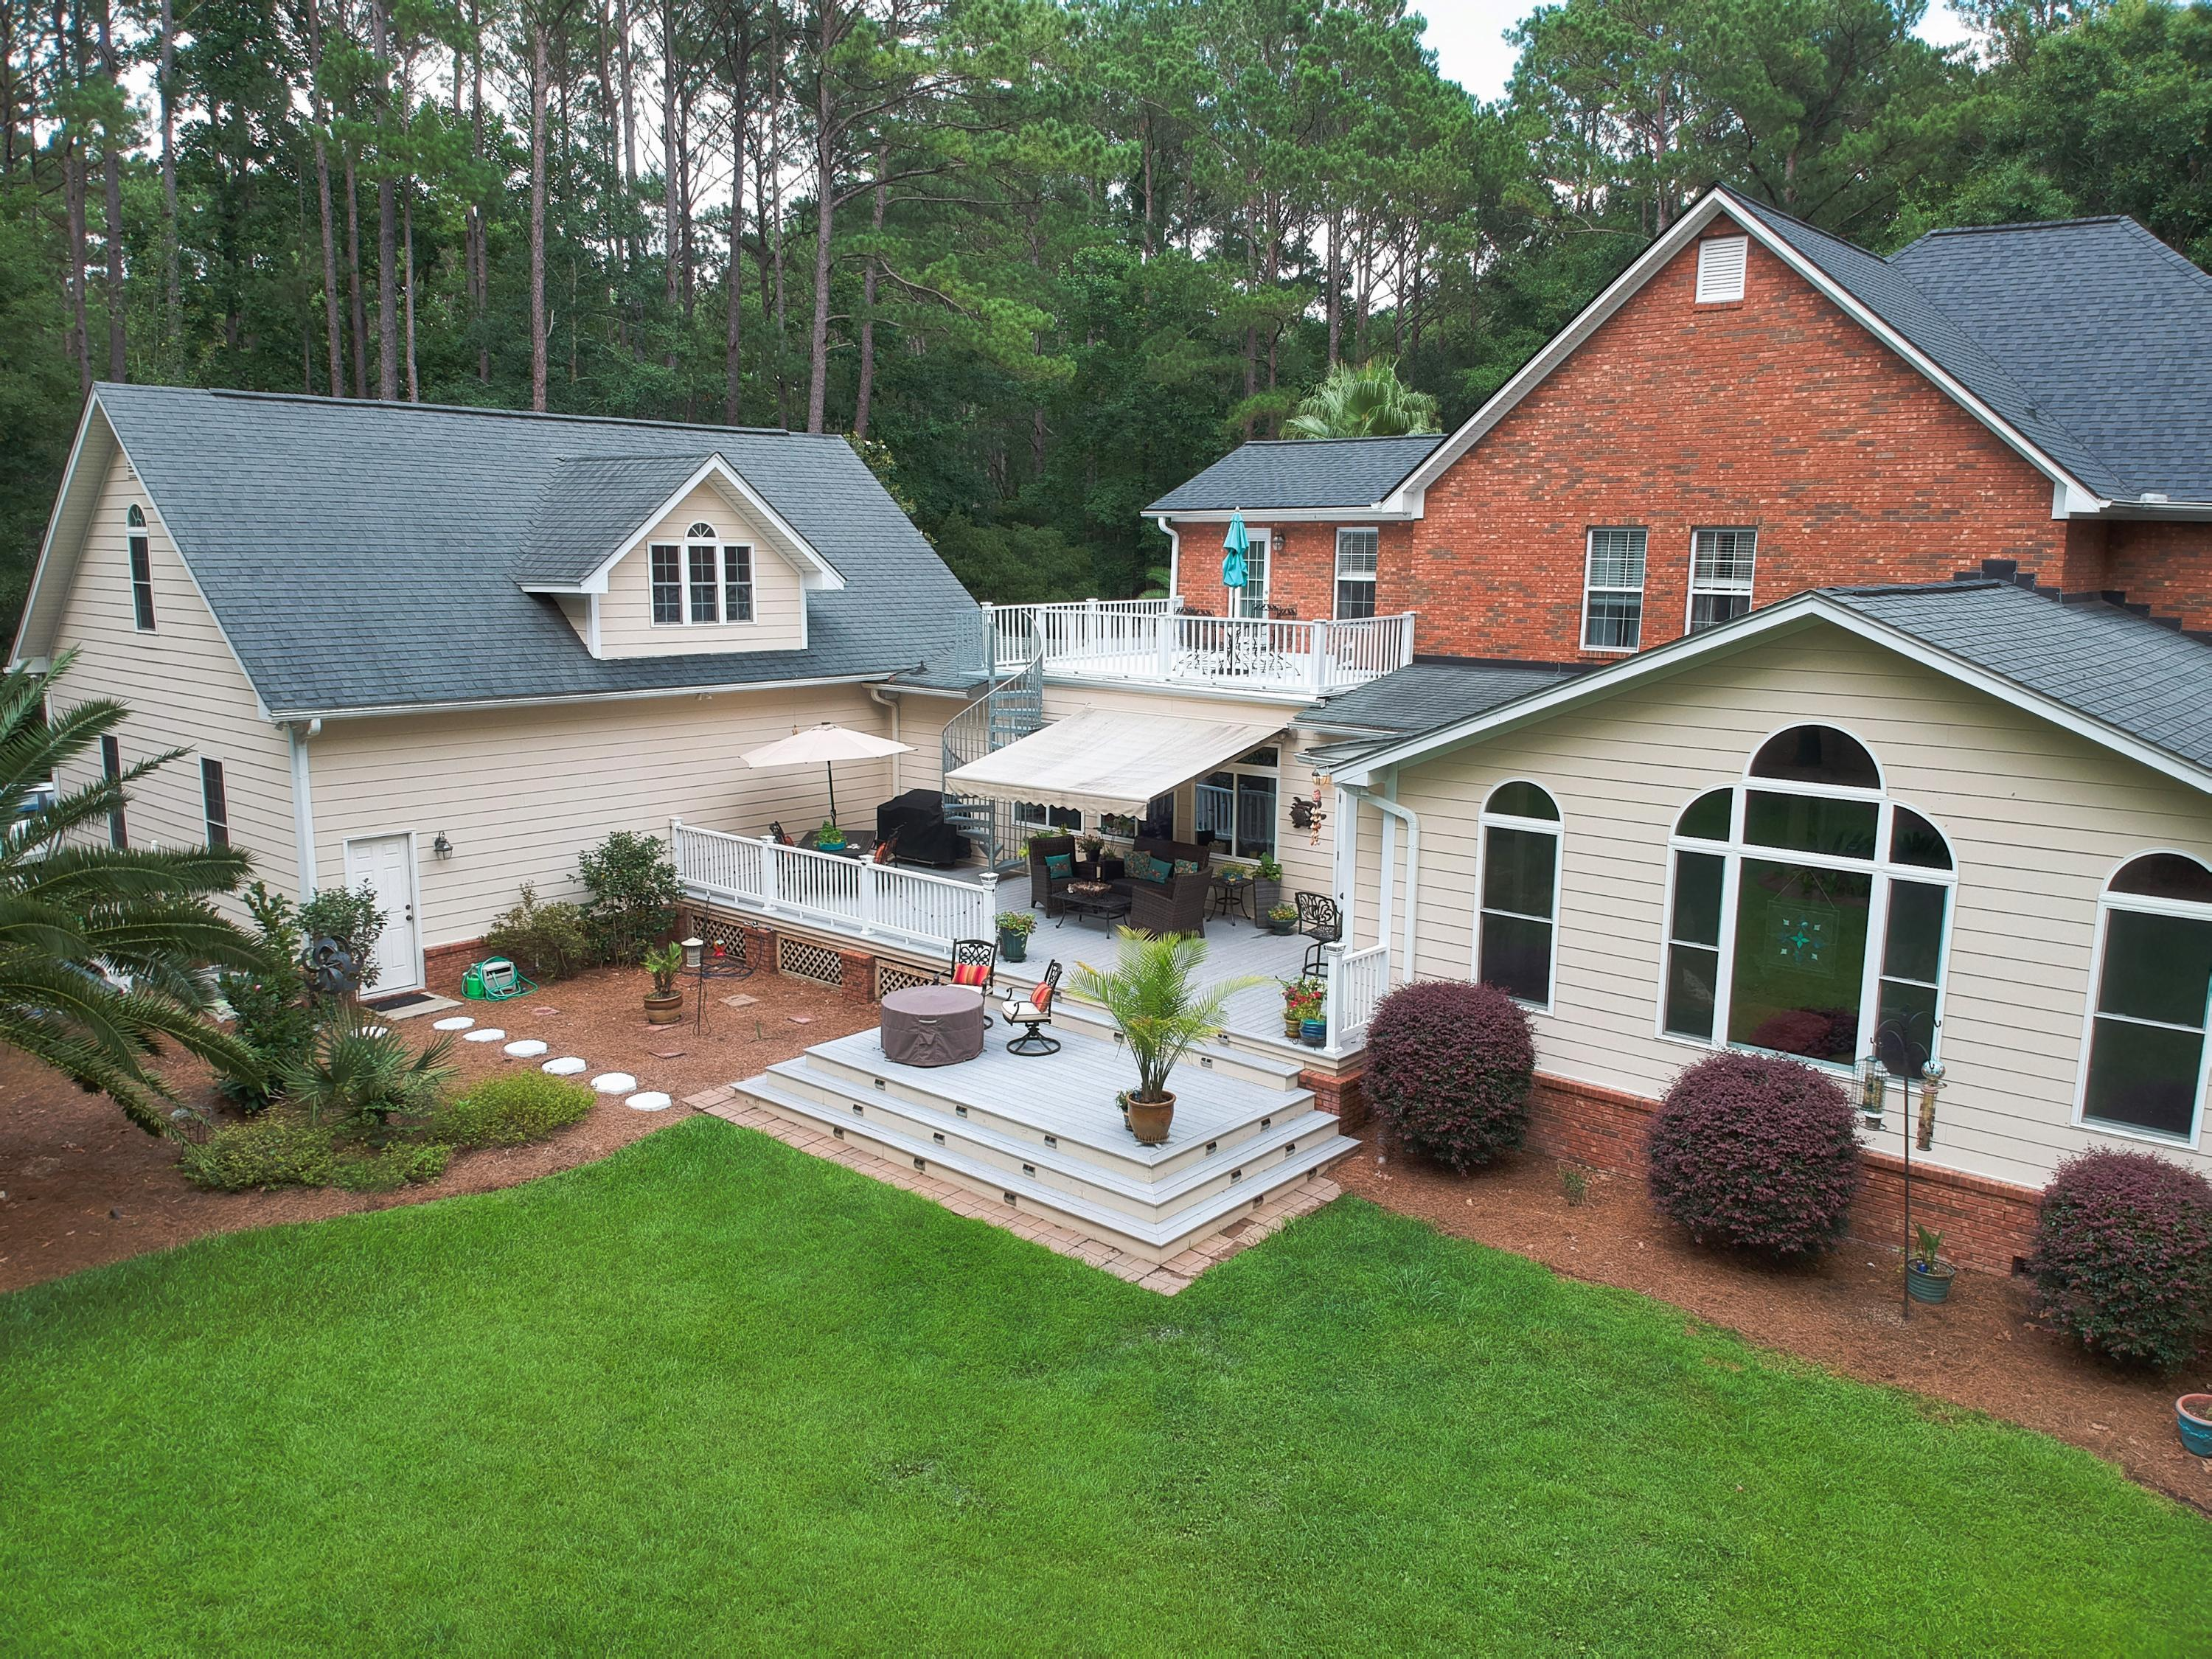 Dunes West Homes For Sale - 1880 Cherokee Rose, Mount Pleasant, SC - 32